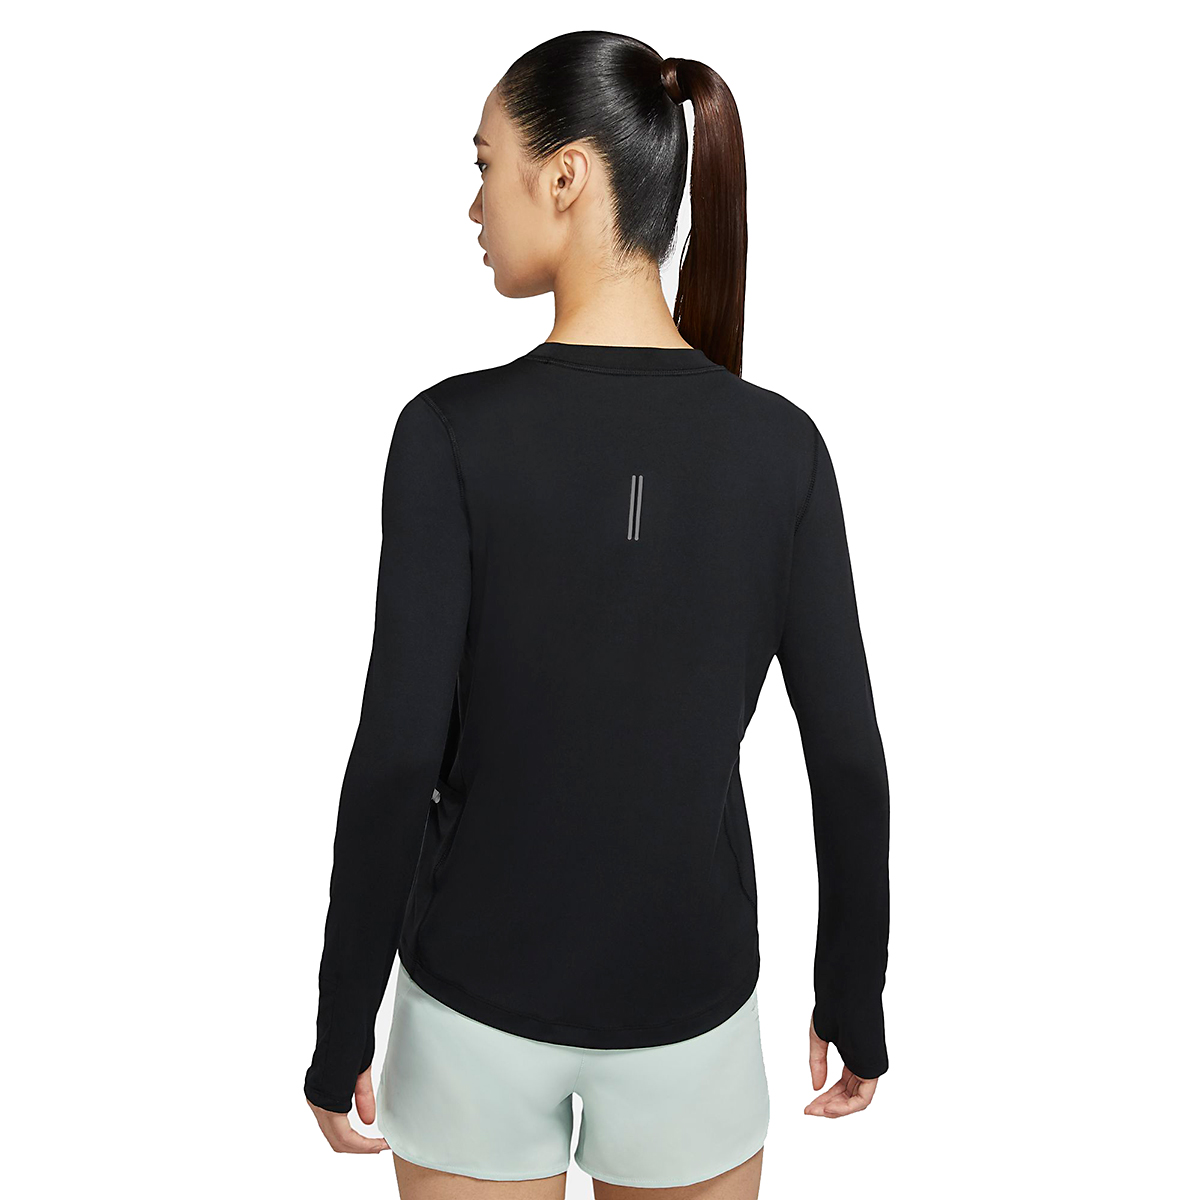 Women's Nike Element Crew Long Sleeve - Color: Black/Reflective Silver - Size: XS, Black/Reflective Silver, large, image 4